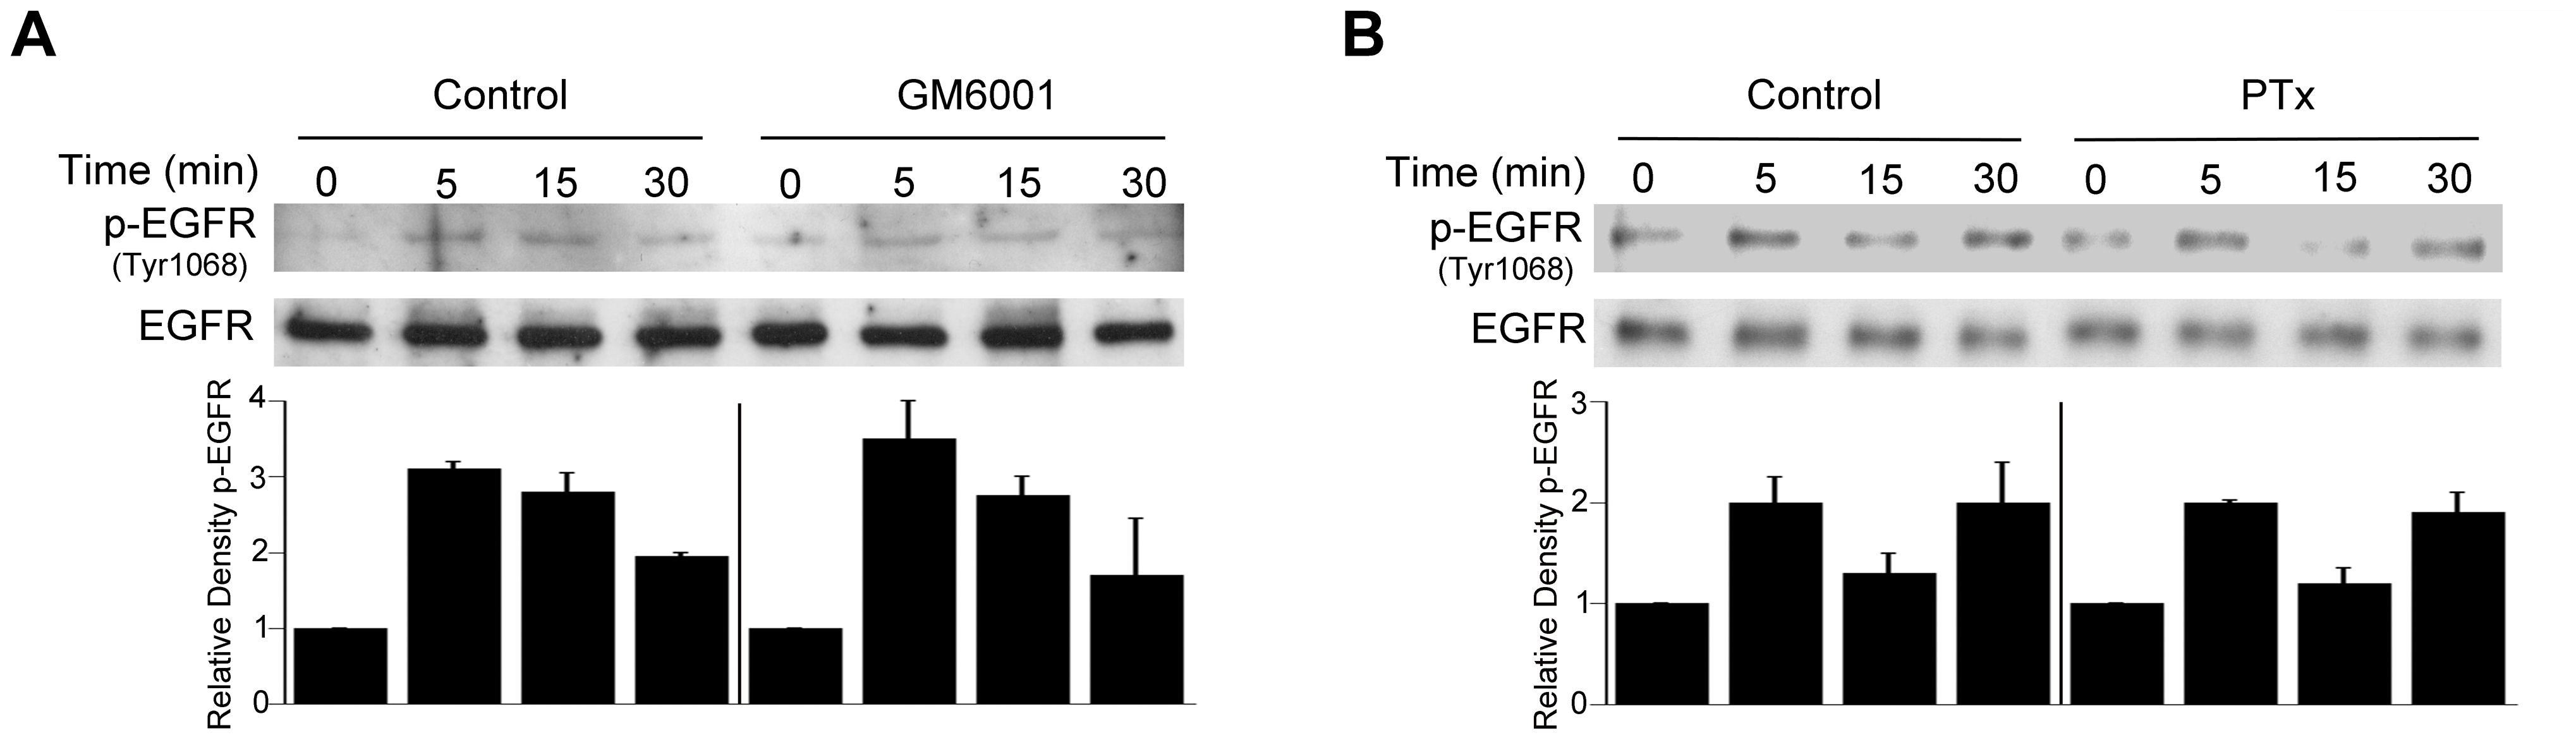 Role of metalloproteinases and G protein coupled receptors in <i>T. gondii</i>-induced EGFR phosphorylation.